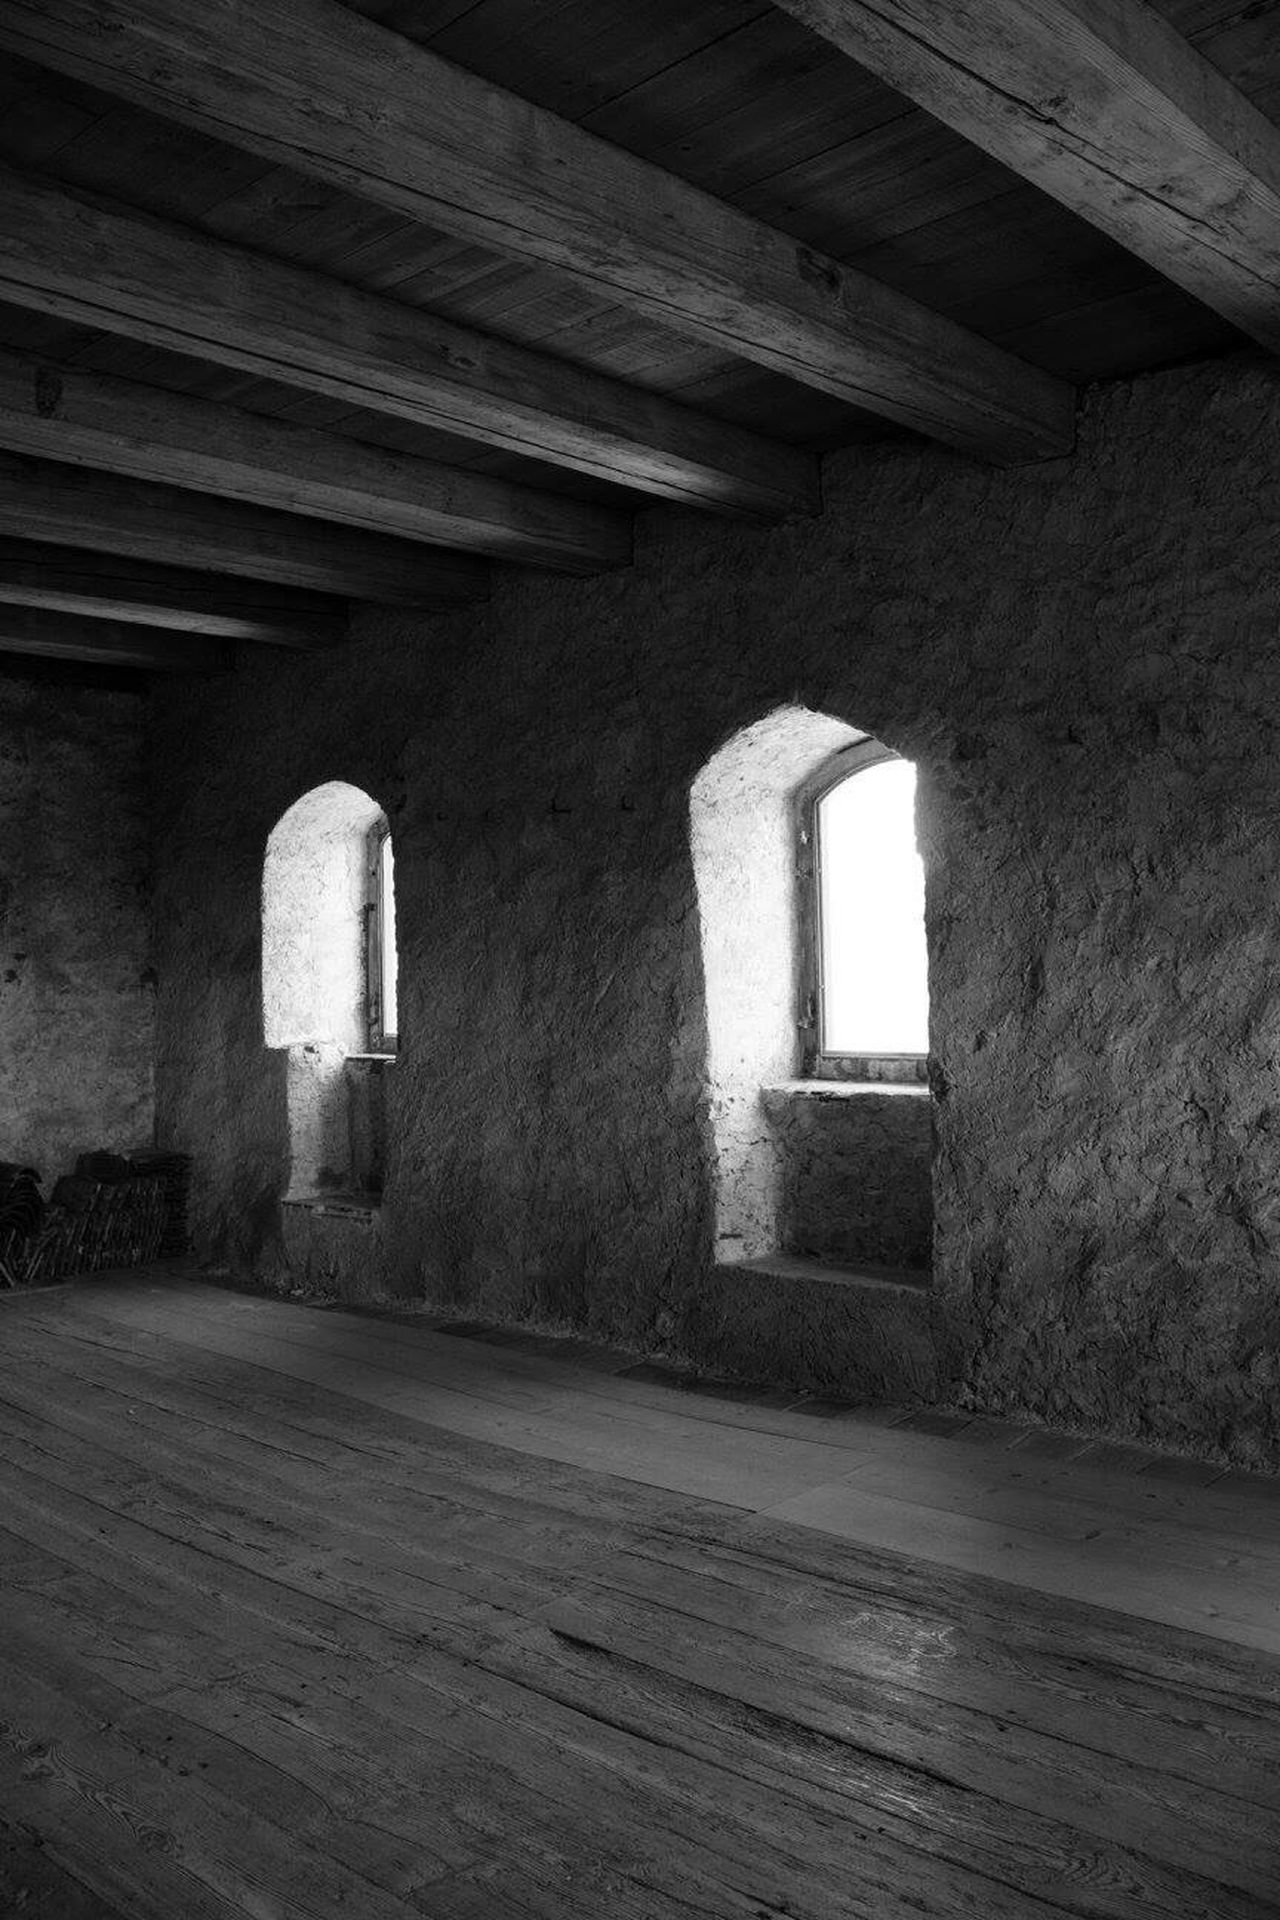 Empty Room Empty Blackandwhite Photography Blackandwhite Tadaa Community Tranquility Wooden Room Canonphotography Light And Shadow Old Buildings Black And White Photography Is My Passion! Light Window Windows Daylight Showcase May